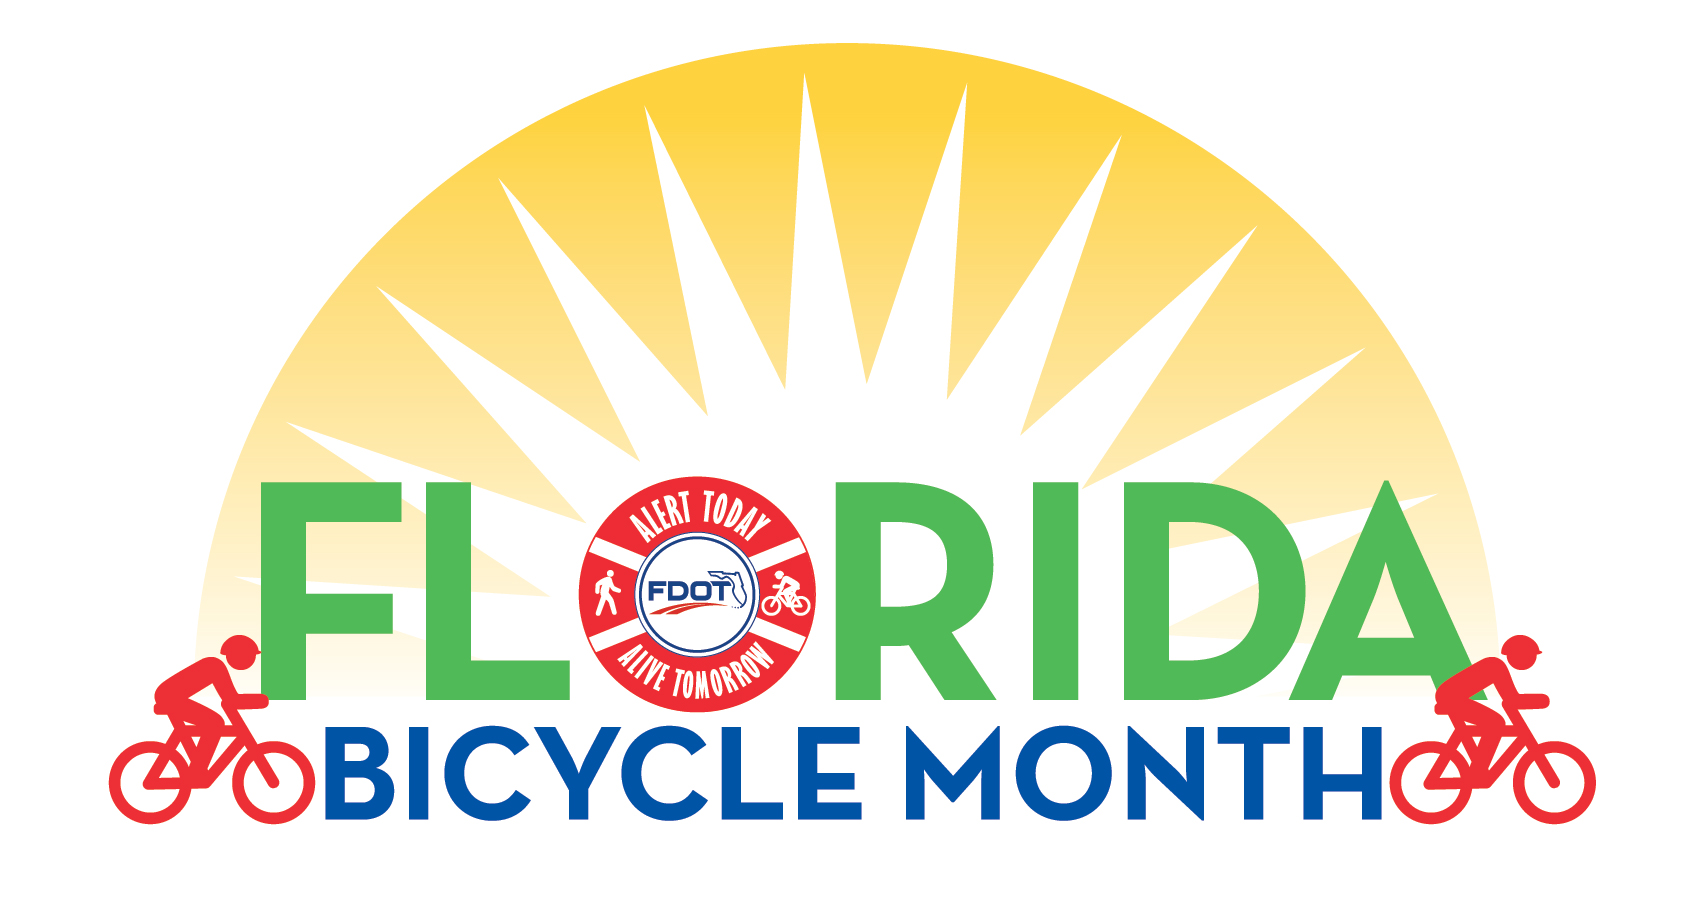 March is Florida Bicycle Month